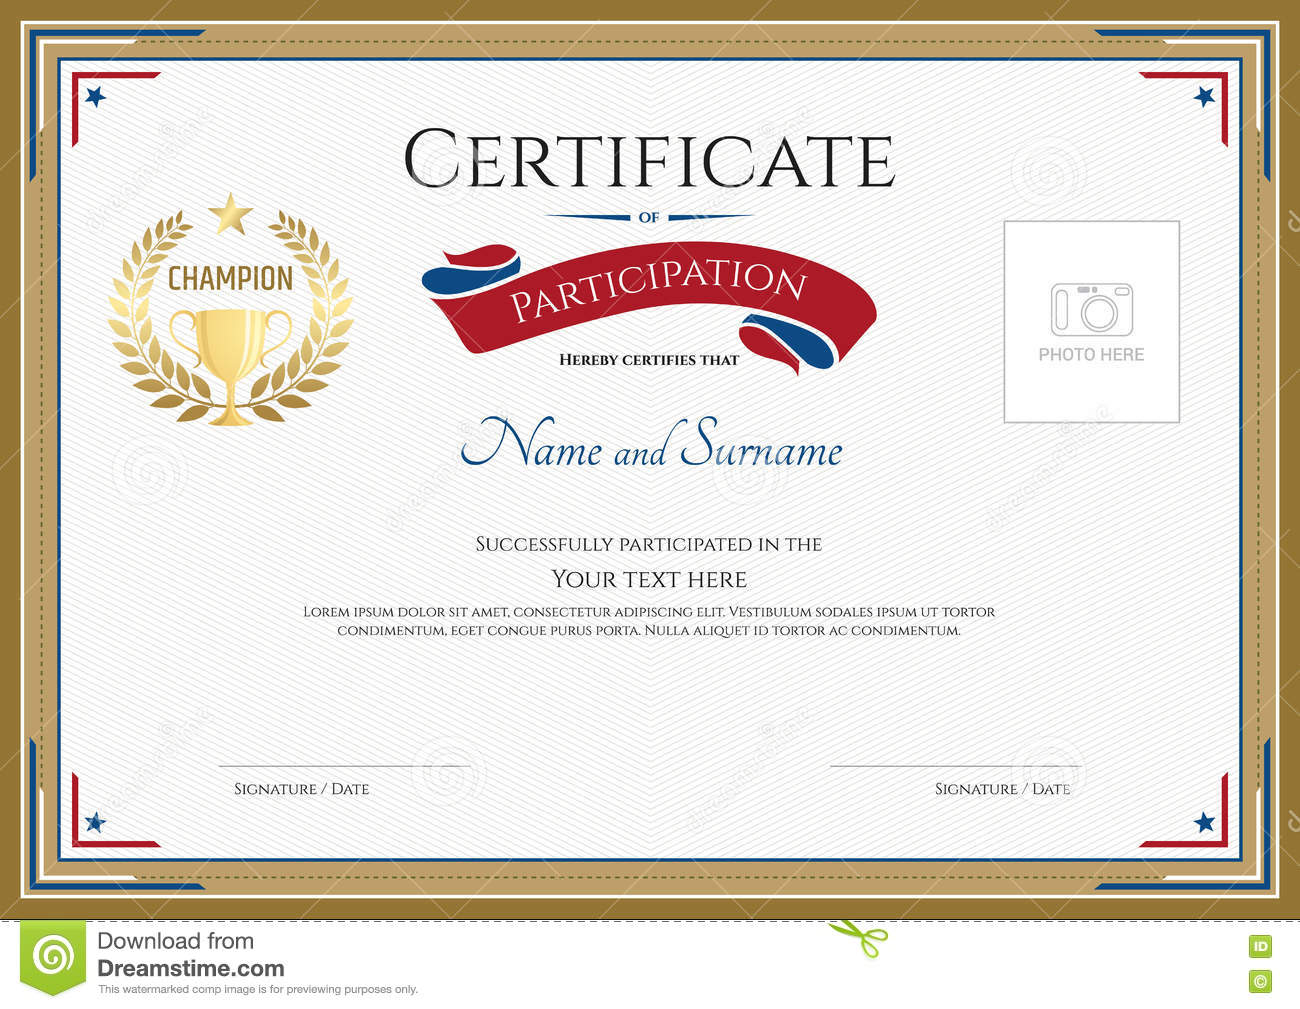 Of Participation Blank Template Certificate Participation Template Sport  Theme Gold Broder Gold Trophy Champion Wreath Photo